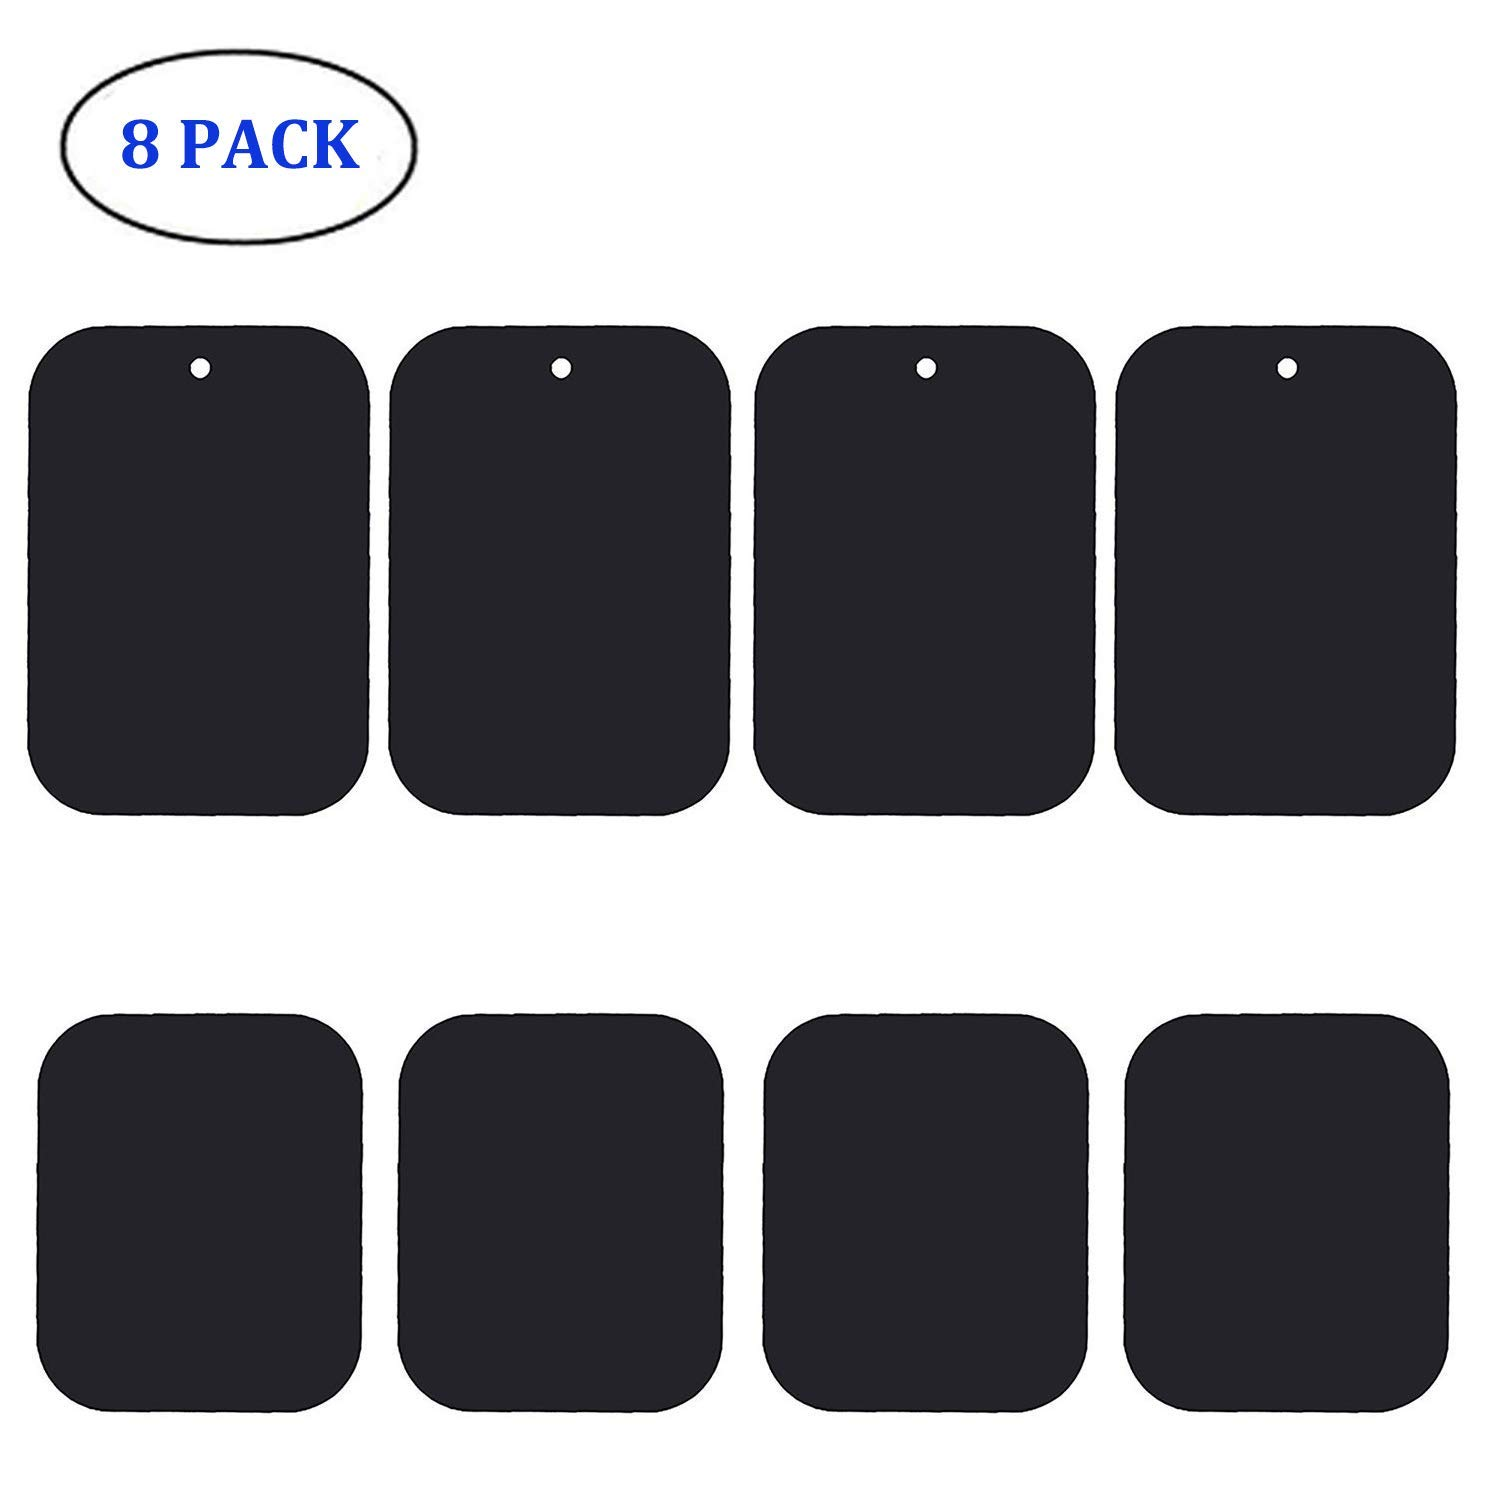 Metal Plate for Magnetic Mount, Bribass 8Pack Replacement Metal Plates with Strong Adhesive for Magnetic Phone Car Mount Holder (Black)